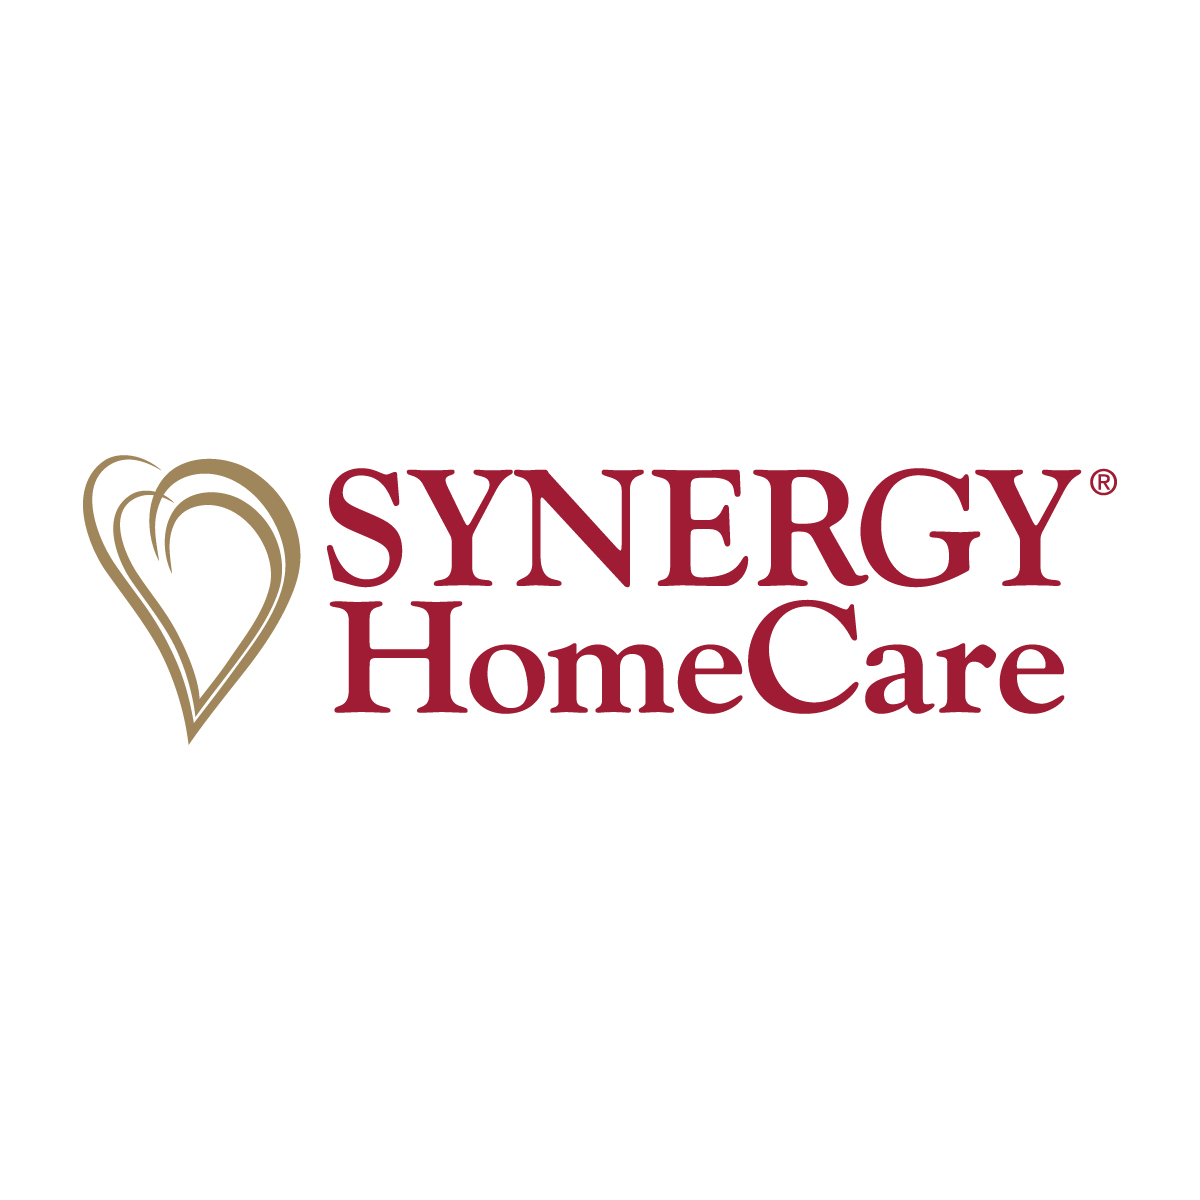 SYNERGY HomeCare - CLOSED